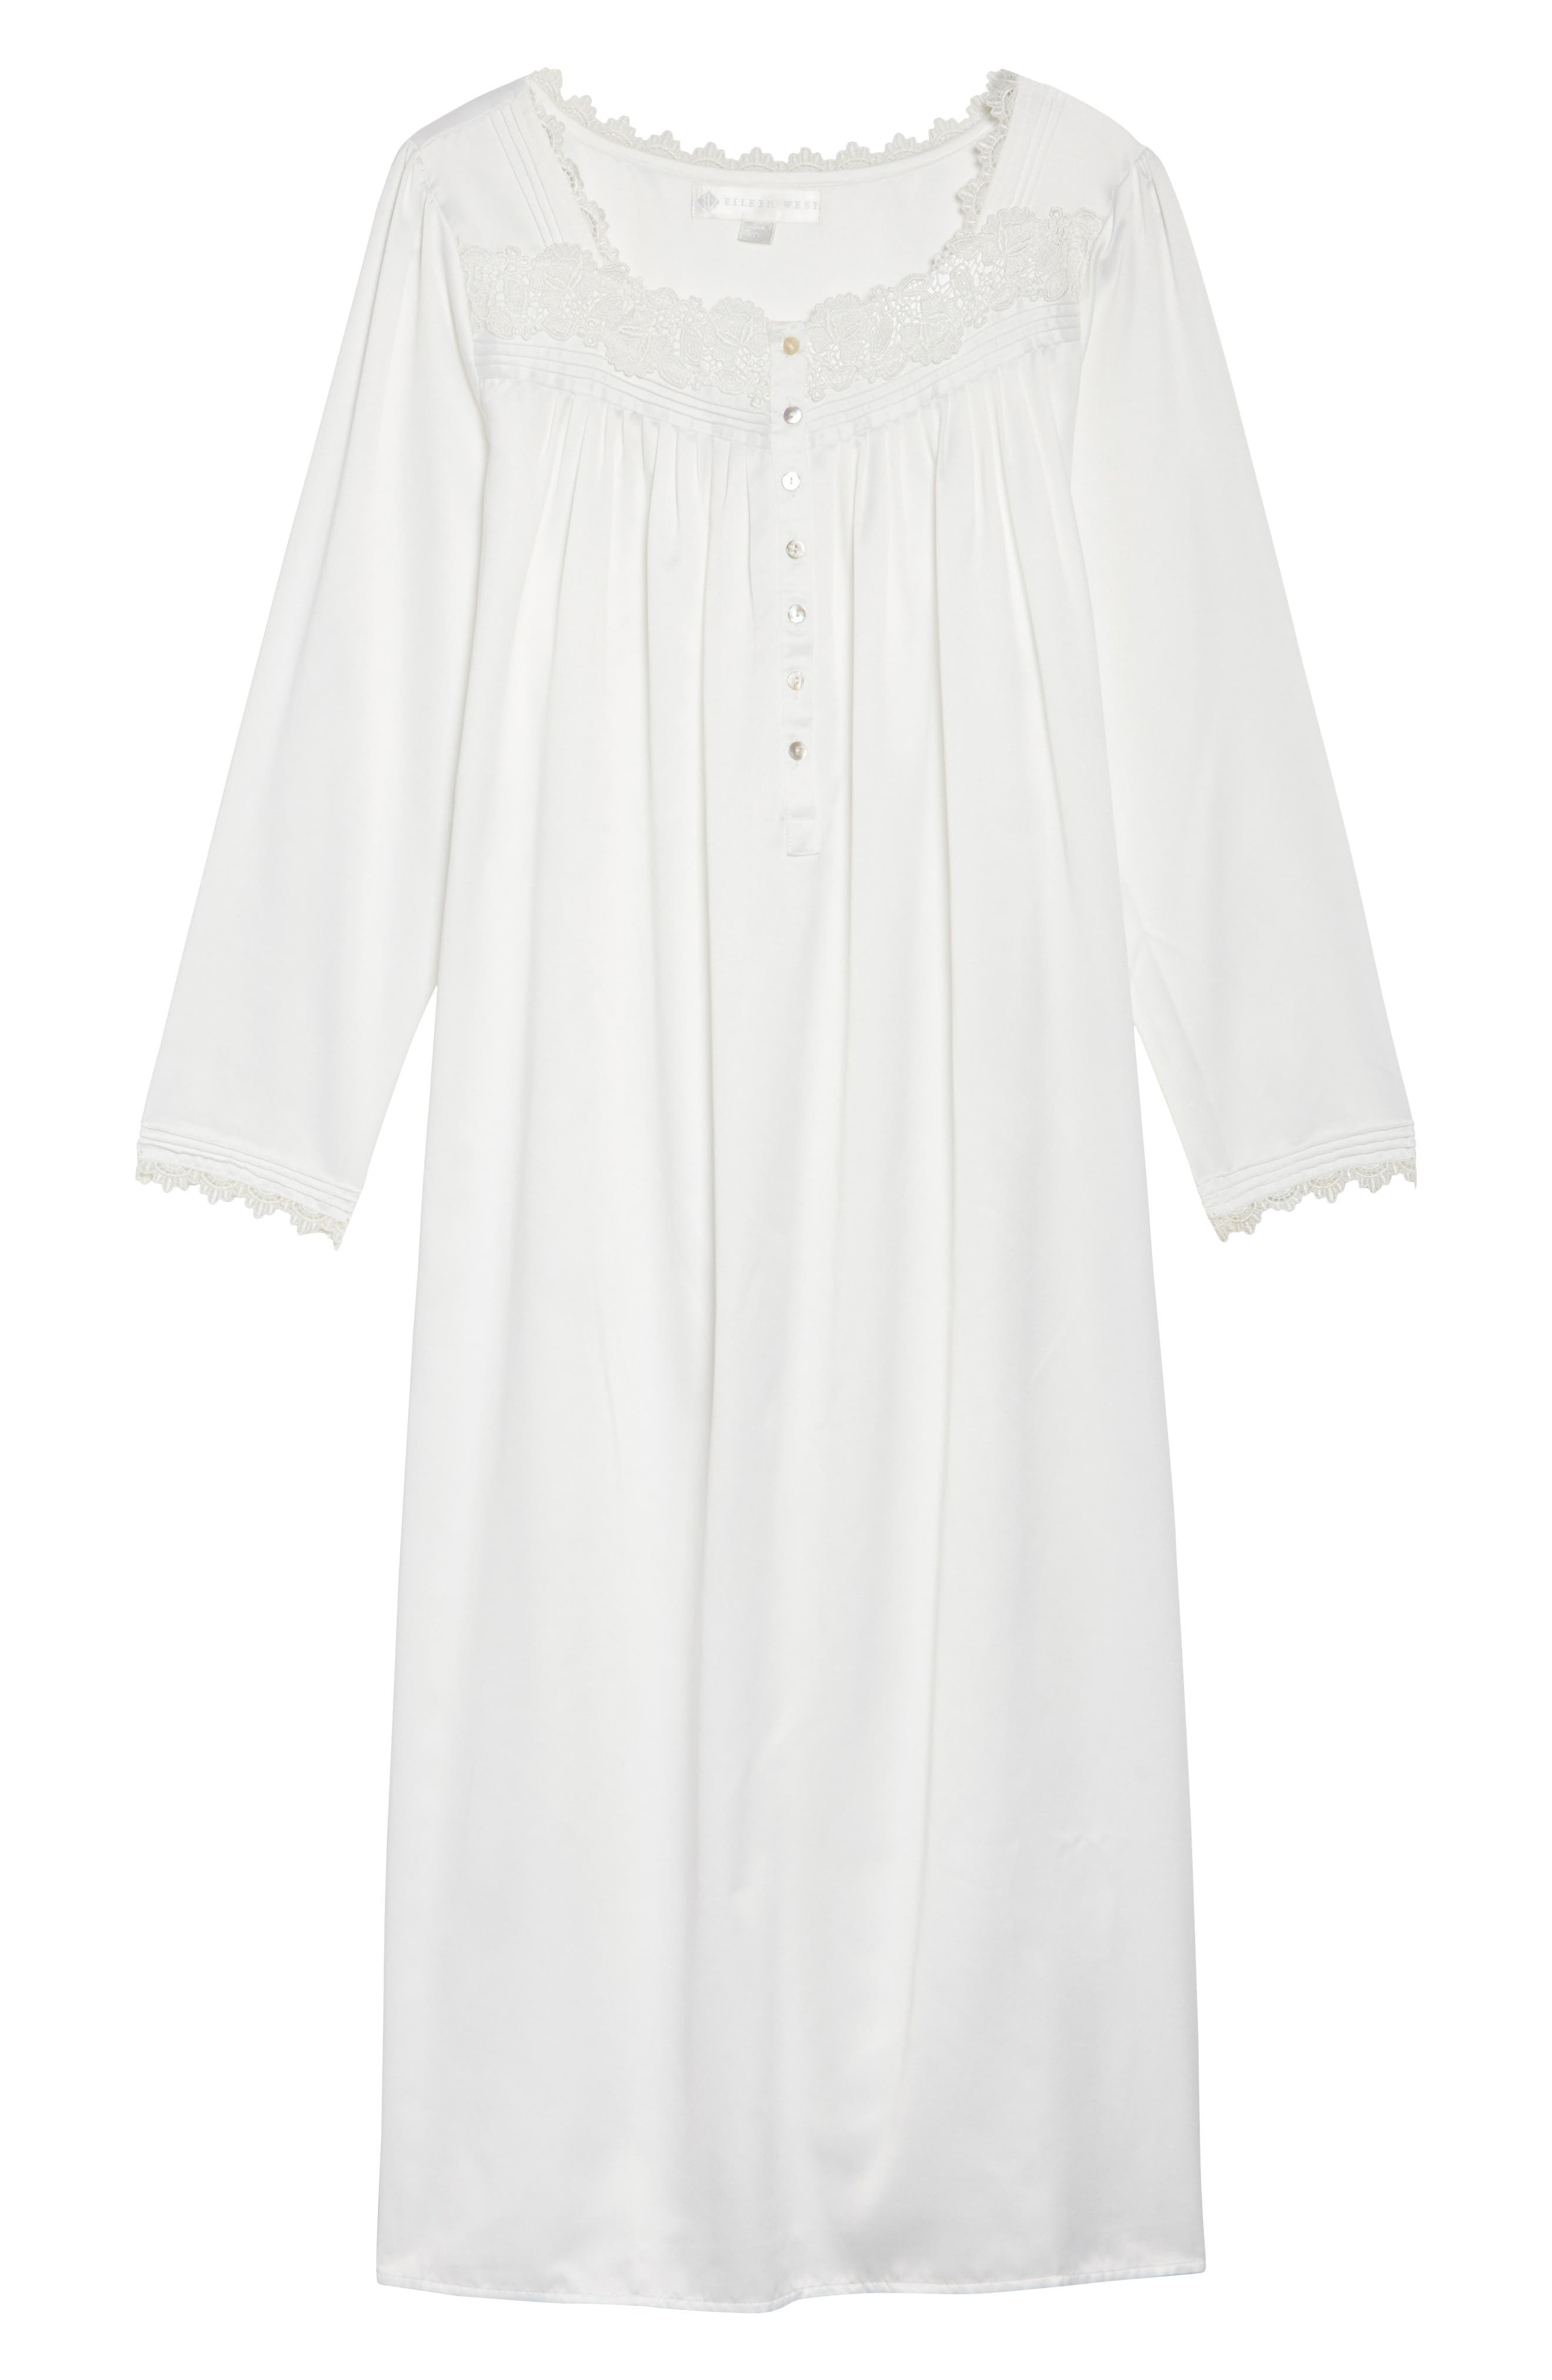 Nightgown,                             Alternate thumbnail 6, color,                             900